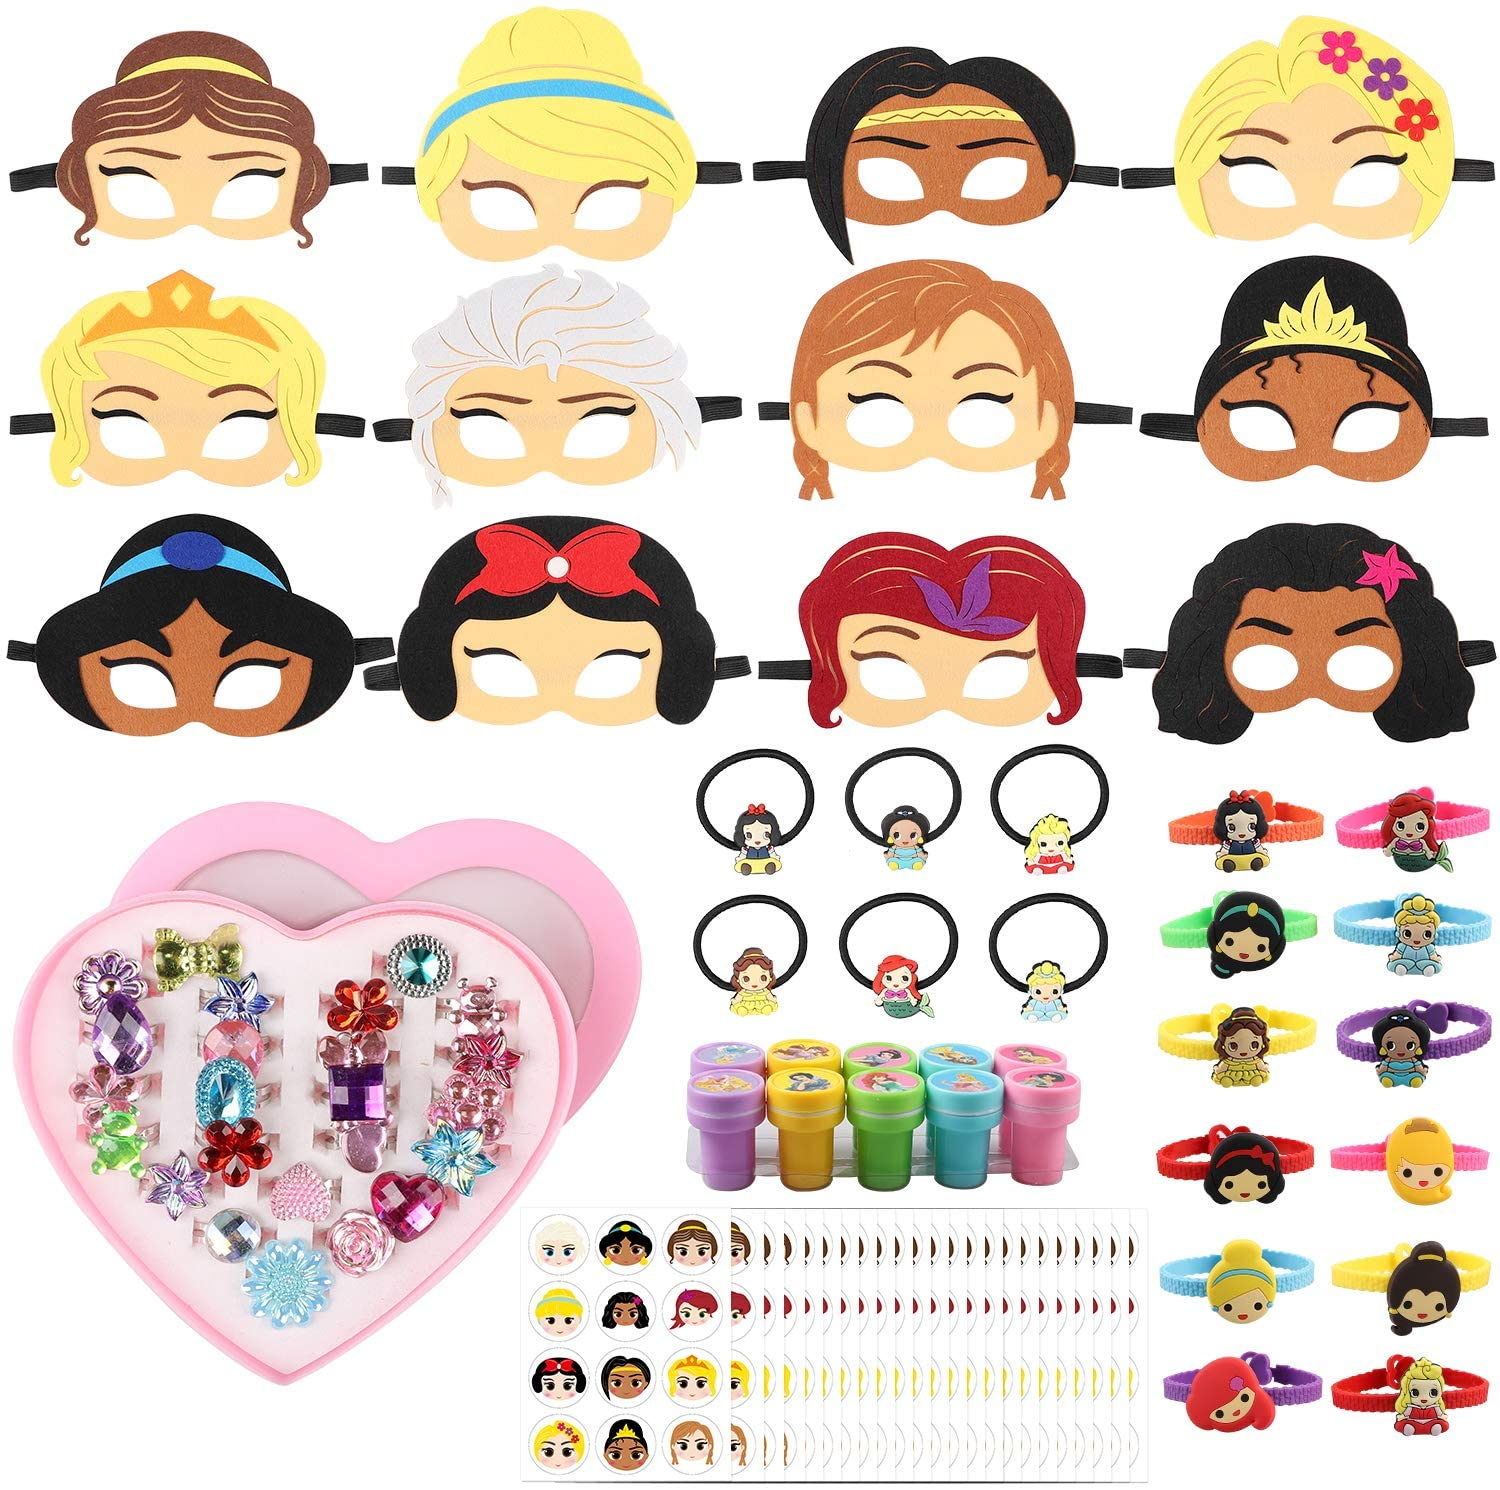 PANTIDE 88Pcs Princess Pretend Play Set- Felt Masks, Hair Elastics, Bracelets, Jewelry Rings, Self-Inking Stampers, Stickers, Princess Themed Party Favors for Girls Birthday Prizes